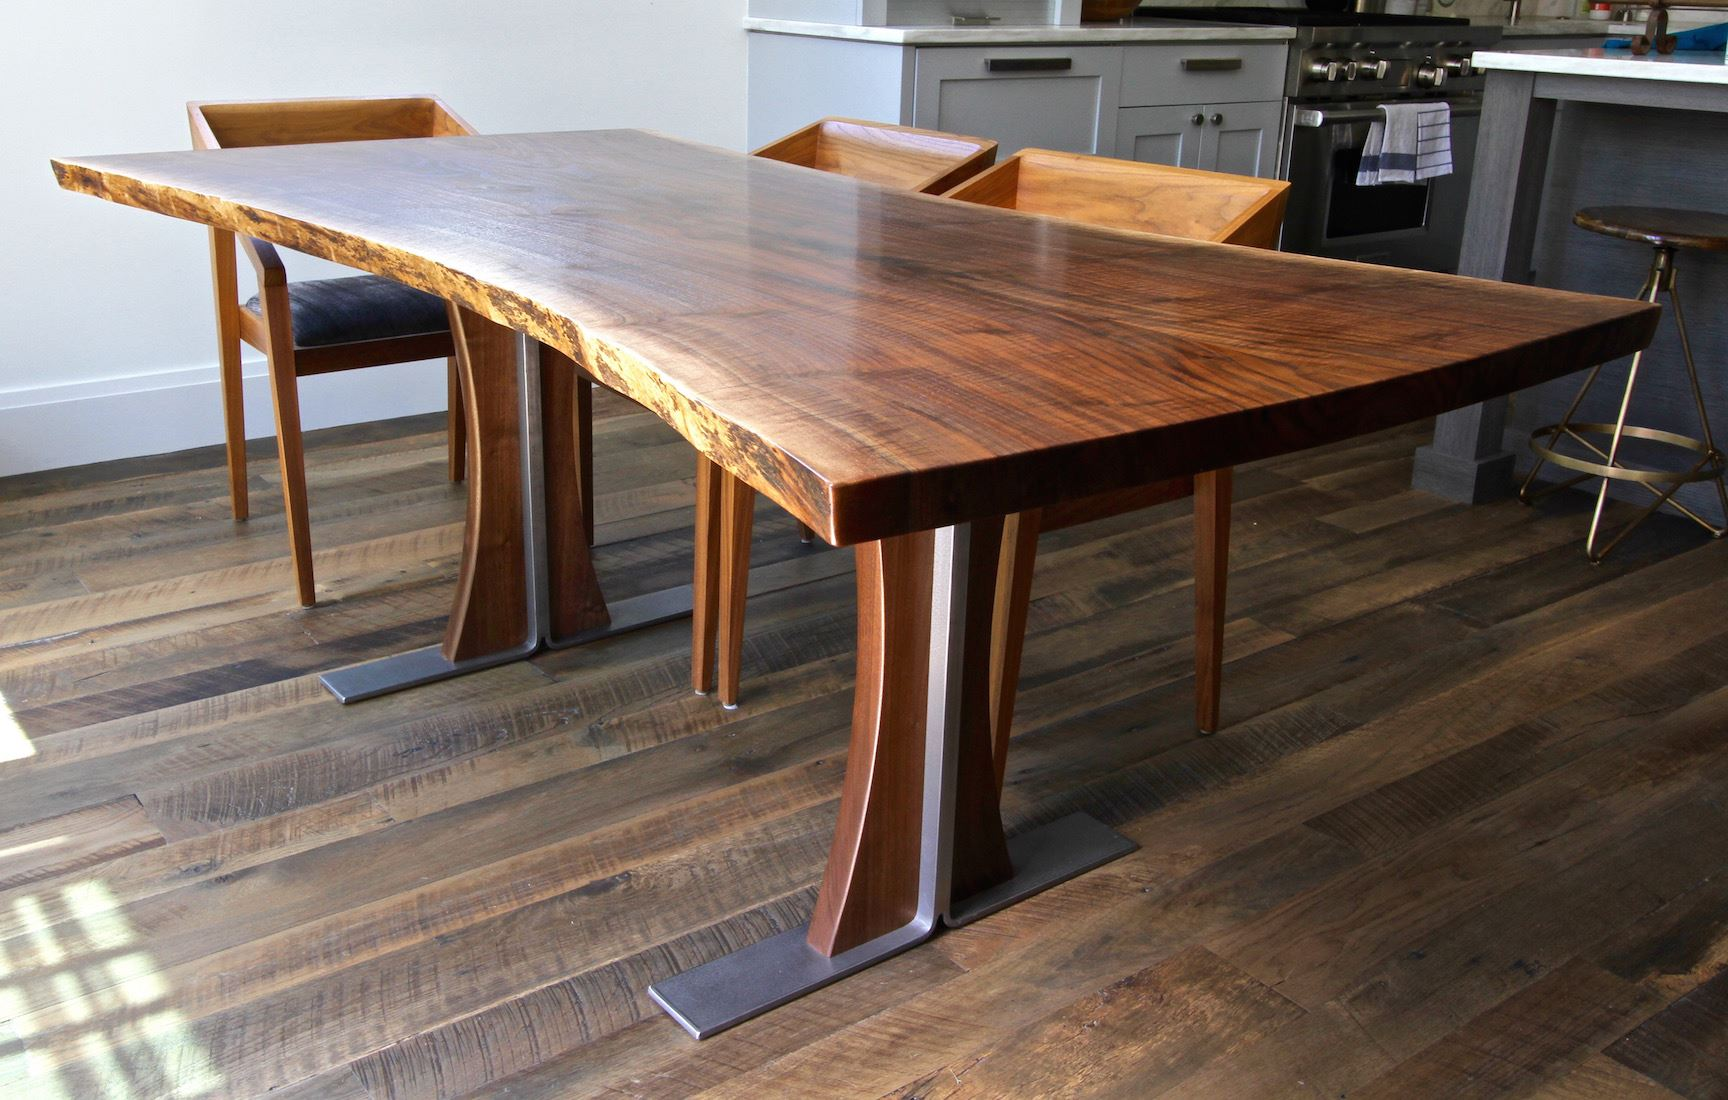 Figured Walnut & Brushed Steel Dining Table